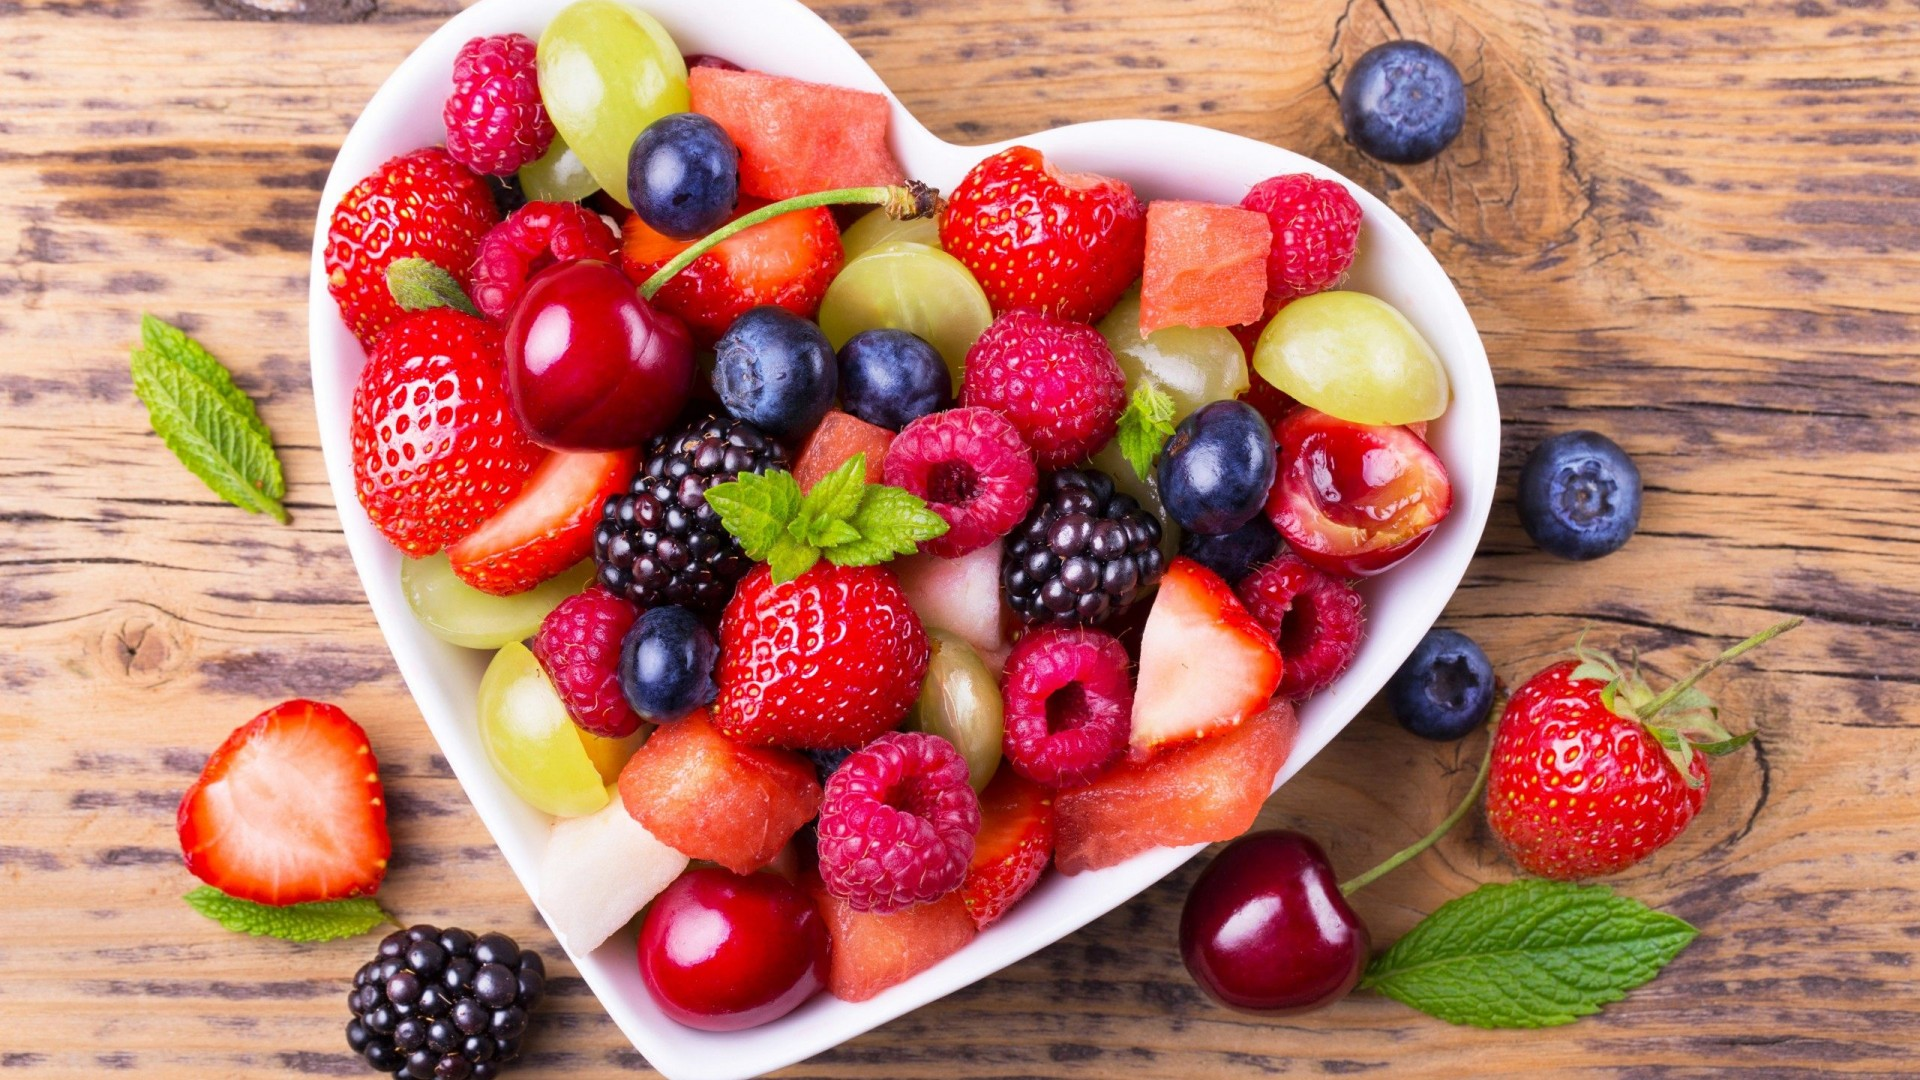 Fruits Wallpaper Wallpapers Adorable Wallpapers